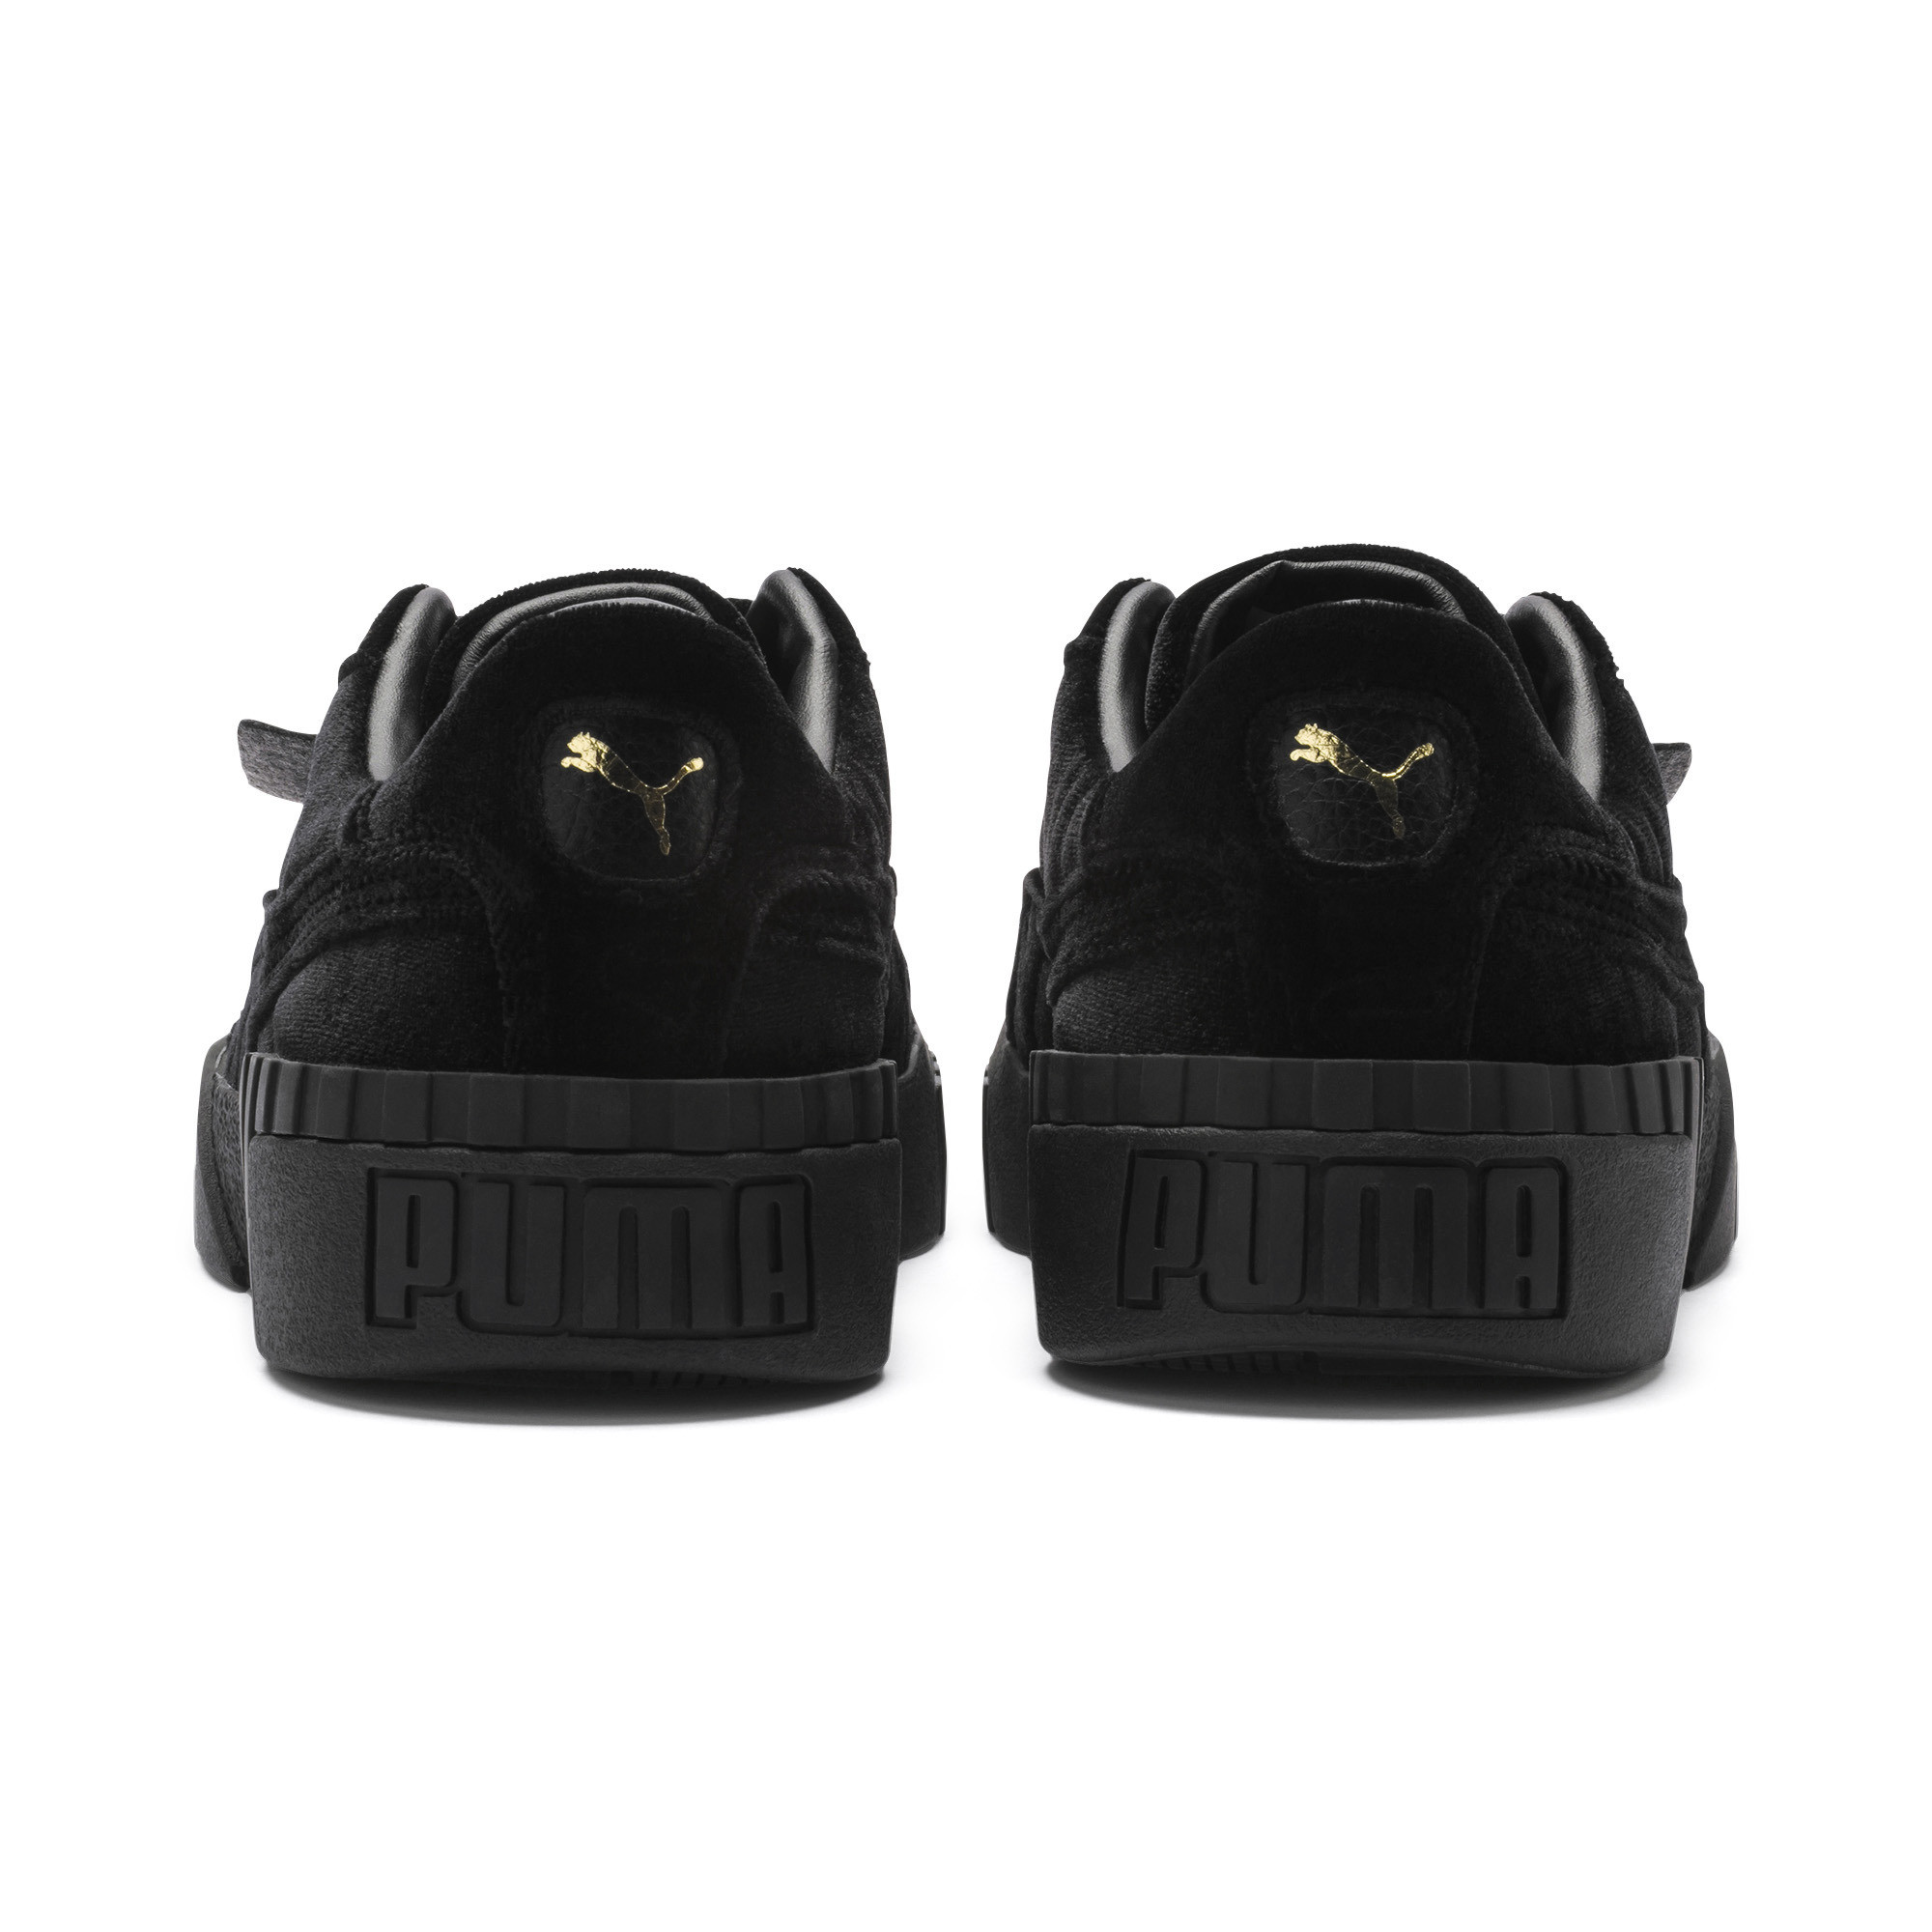 PUMA-Cali-Velvet-Women-039-s-Sneakers-Women-Shoe-Evolution thumbnail 3